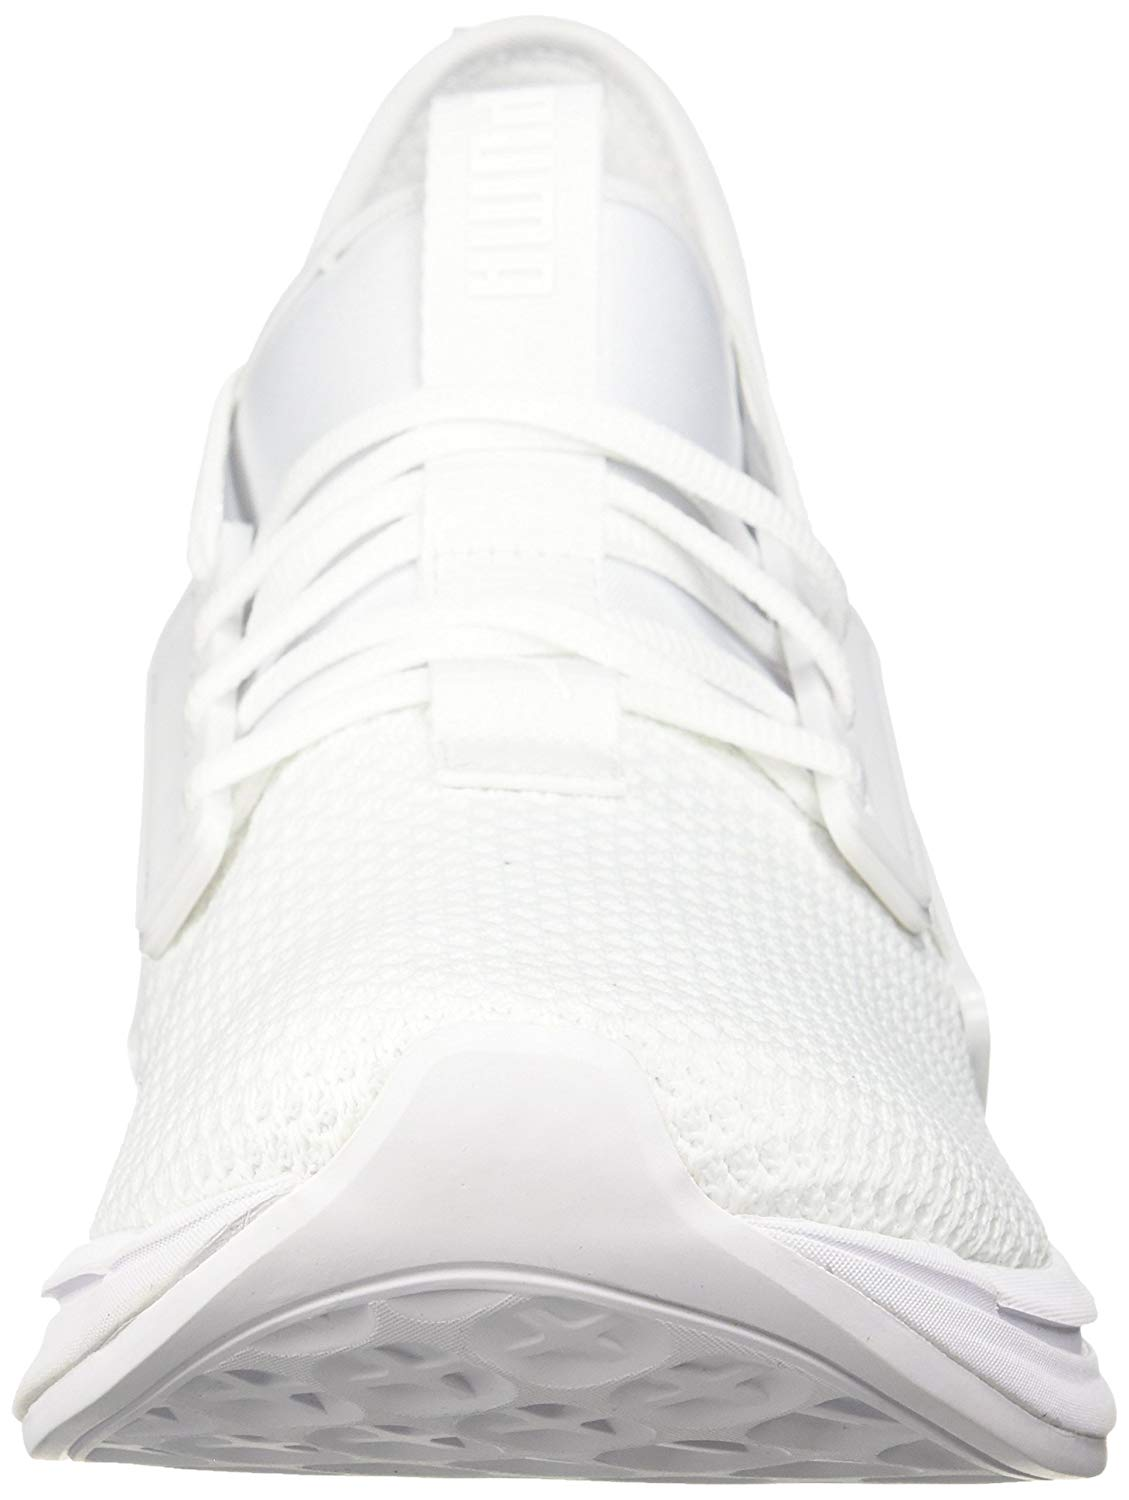 PUMA - Puma Mens Ignite Limitless Sr Low Top Lace Up Trail Running Shoes -  Walmart.com bb8f16f1d